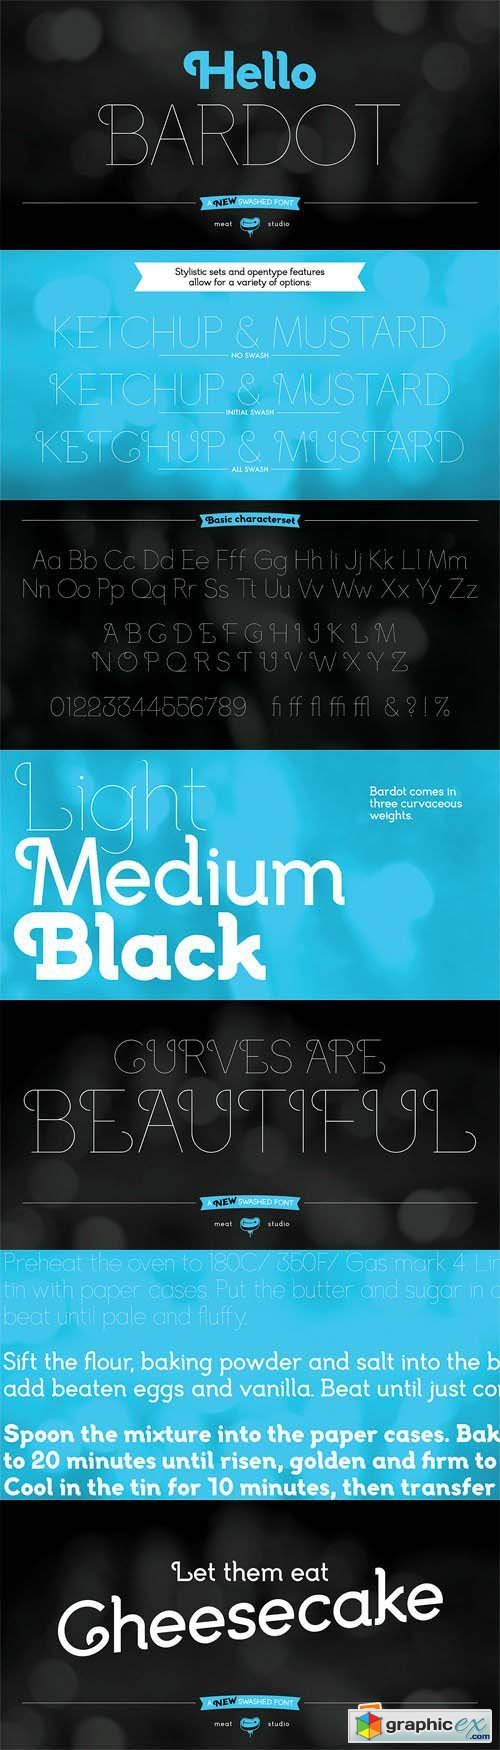 Bardot Font Family - 3 Fonts for $59